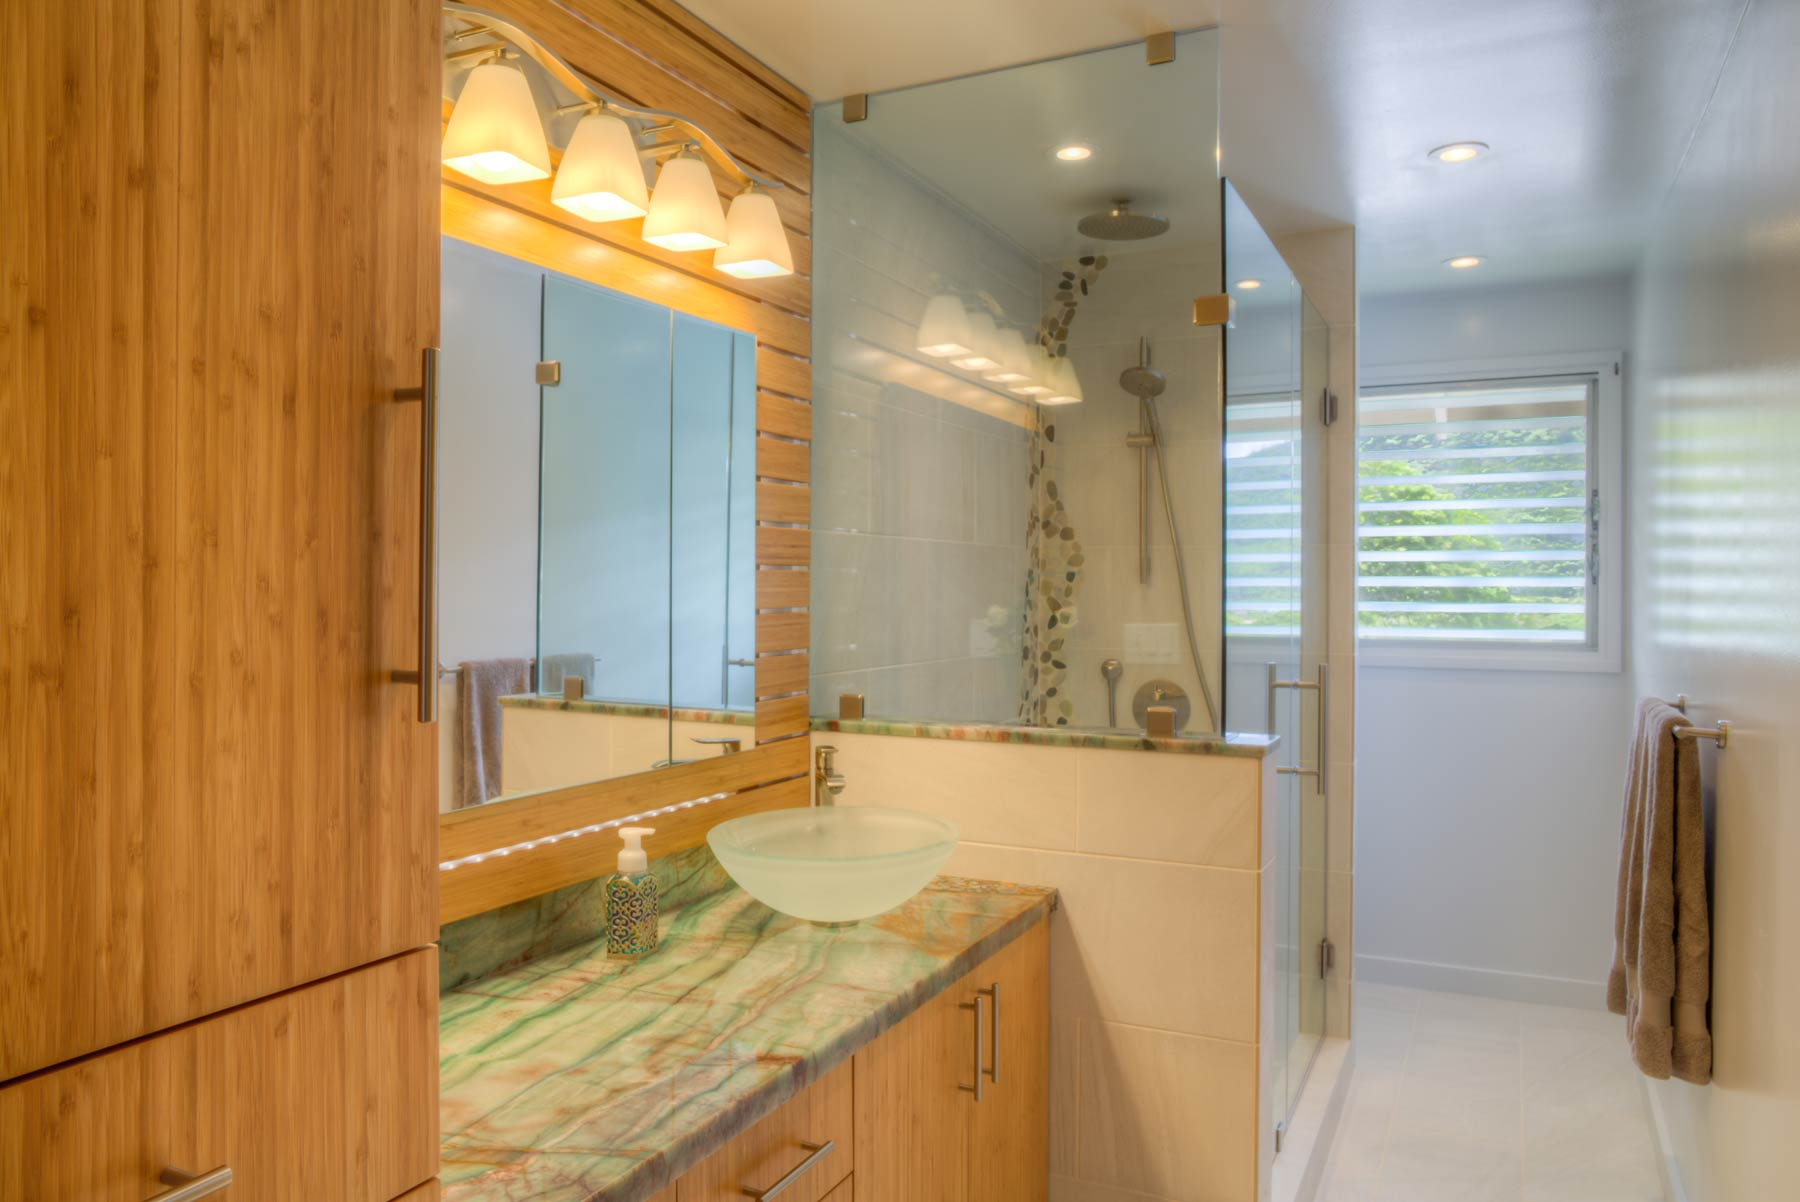 Manoa bathroom remodel by Accent Design